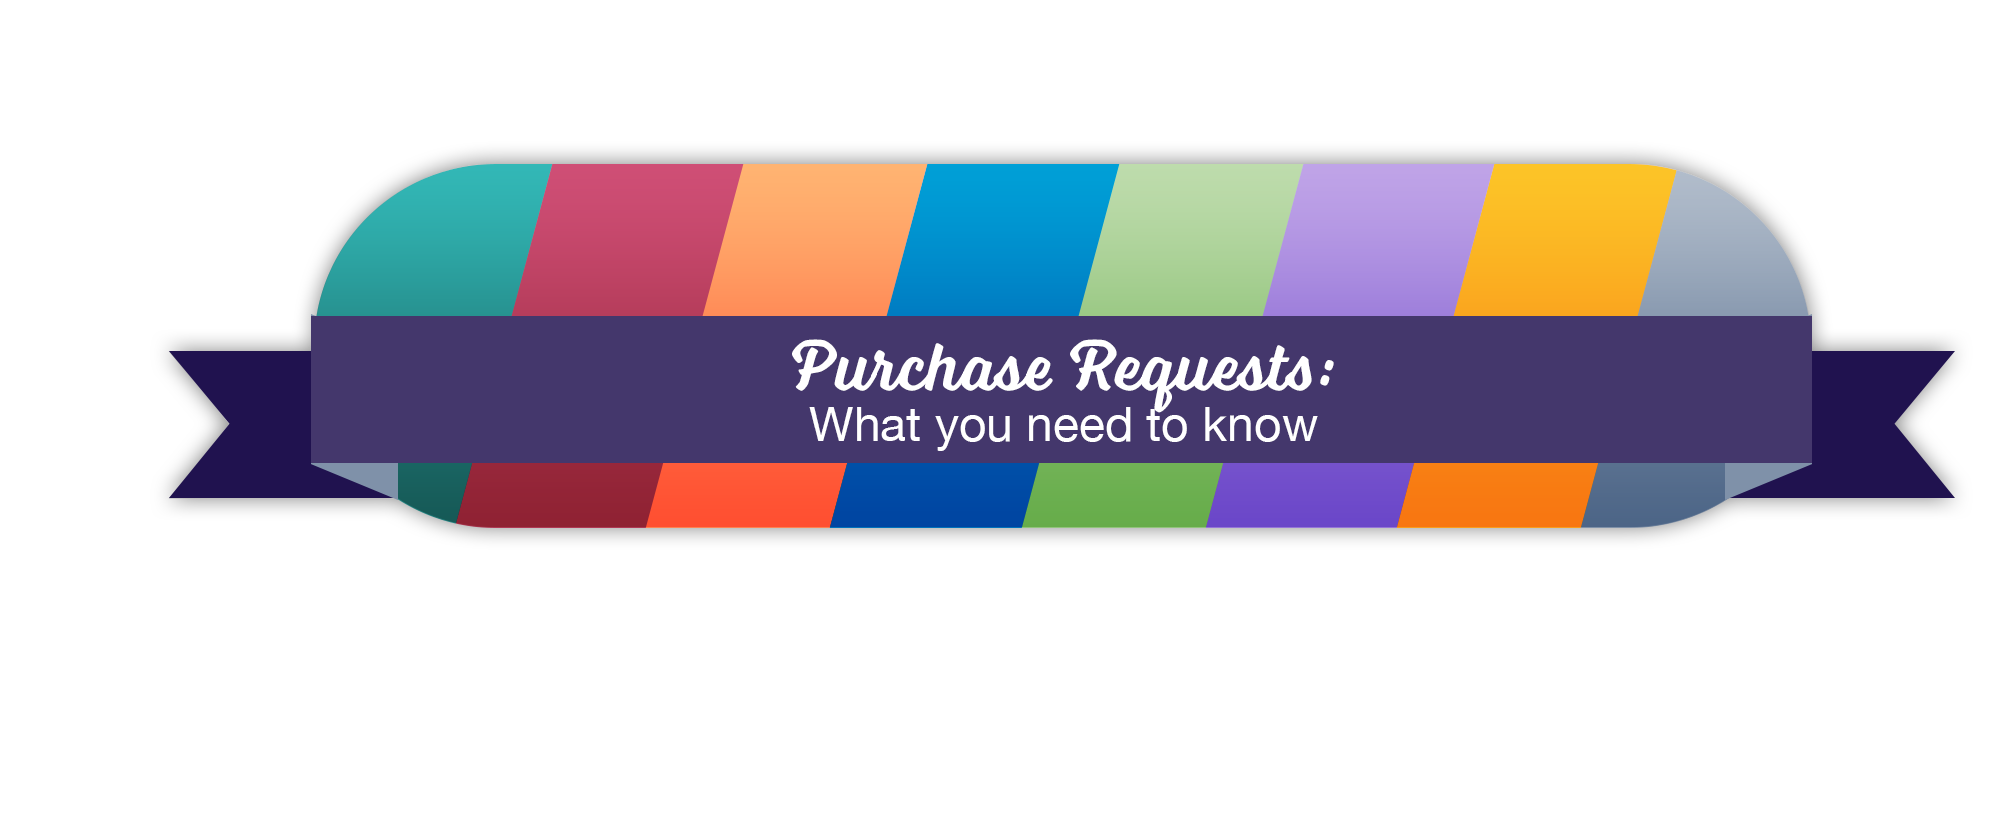 A Illustration with text: Purchase Requests: What you need to know